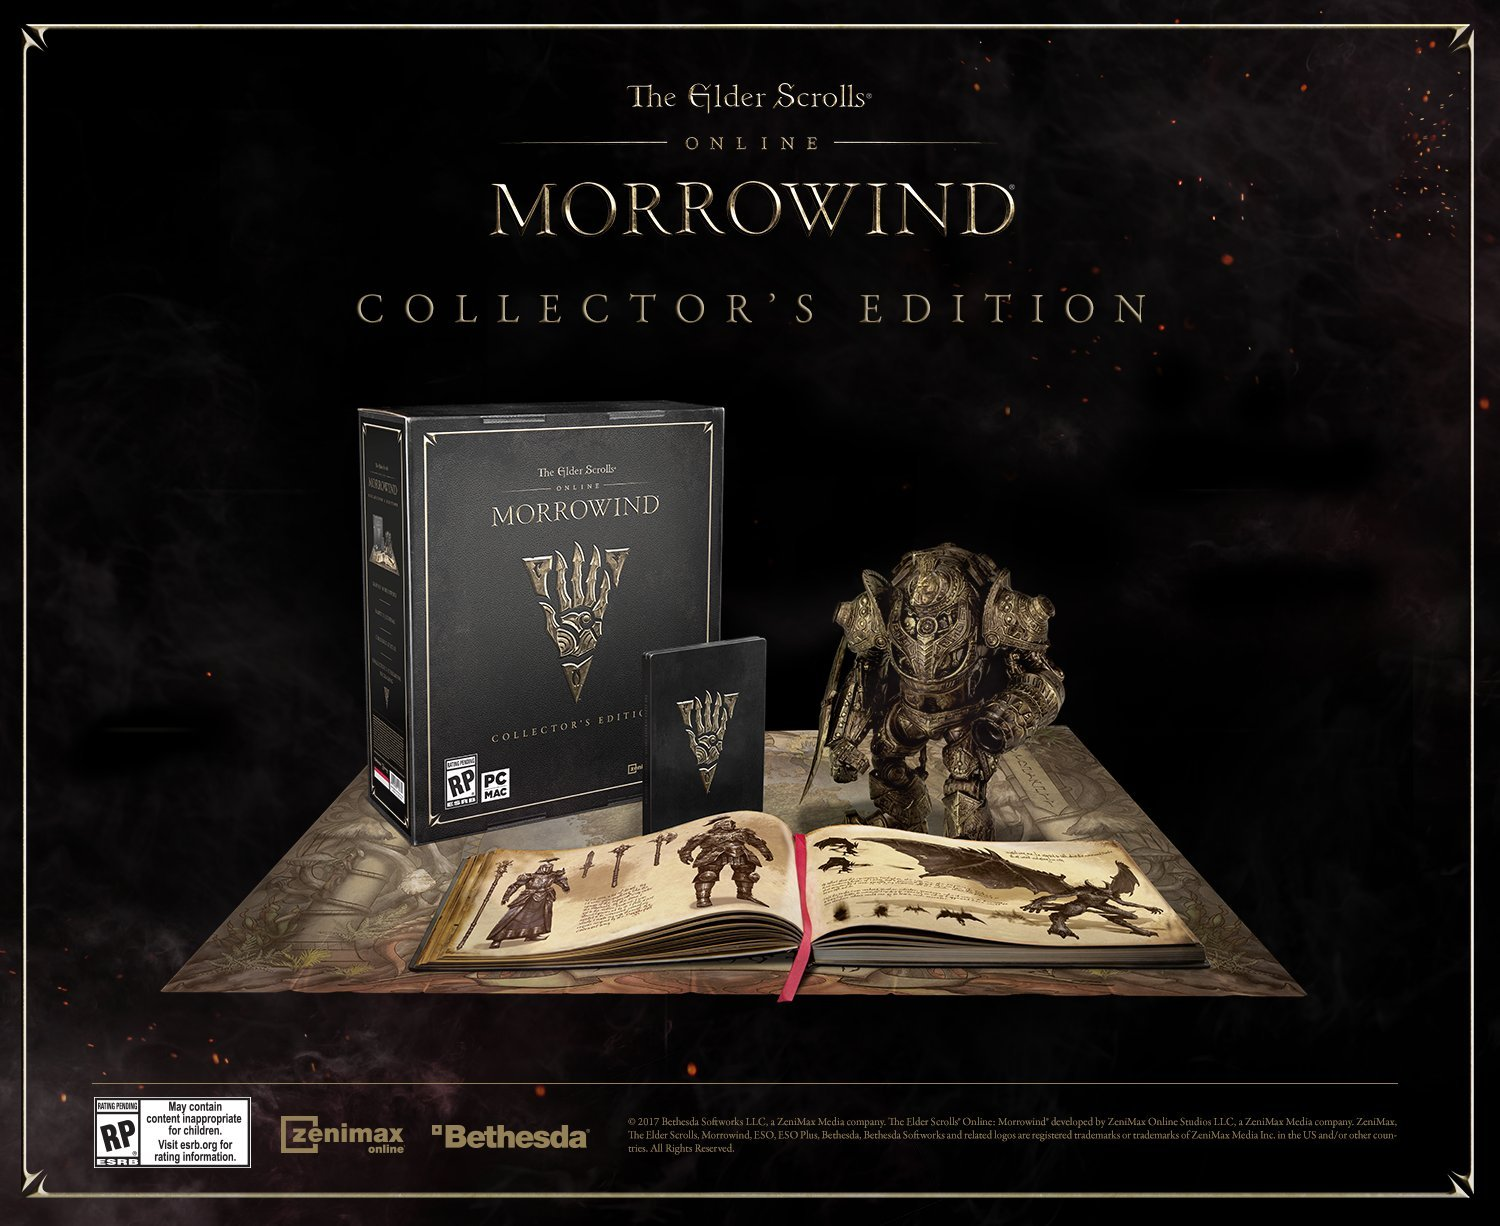 The Elder Scrolls Online: Morrowind Collector's Edition - PC